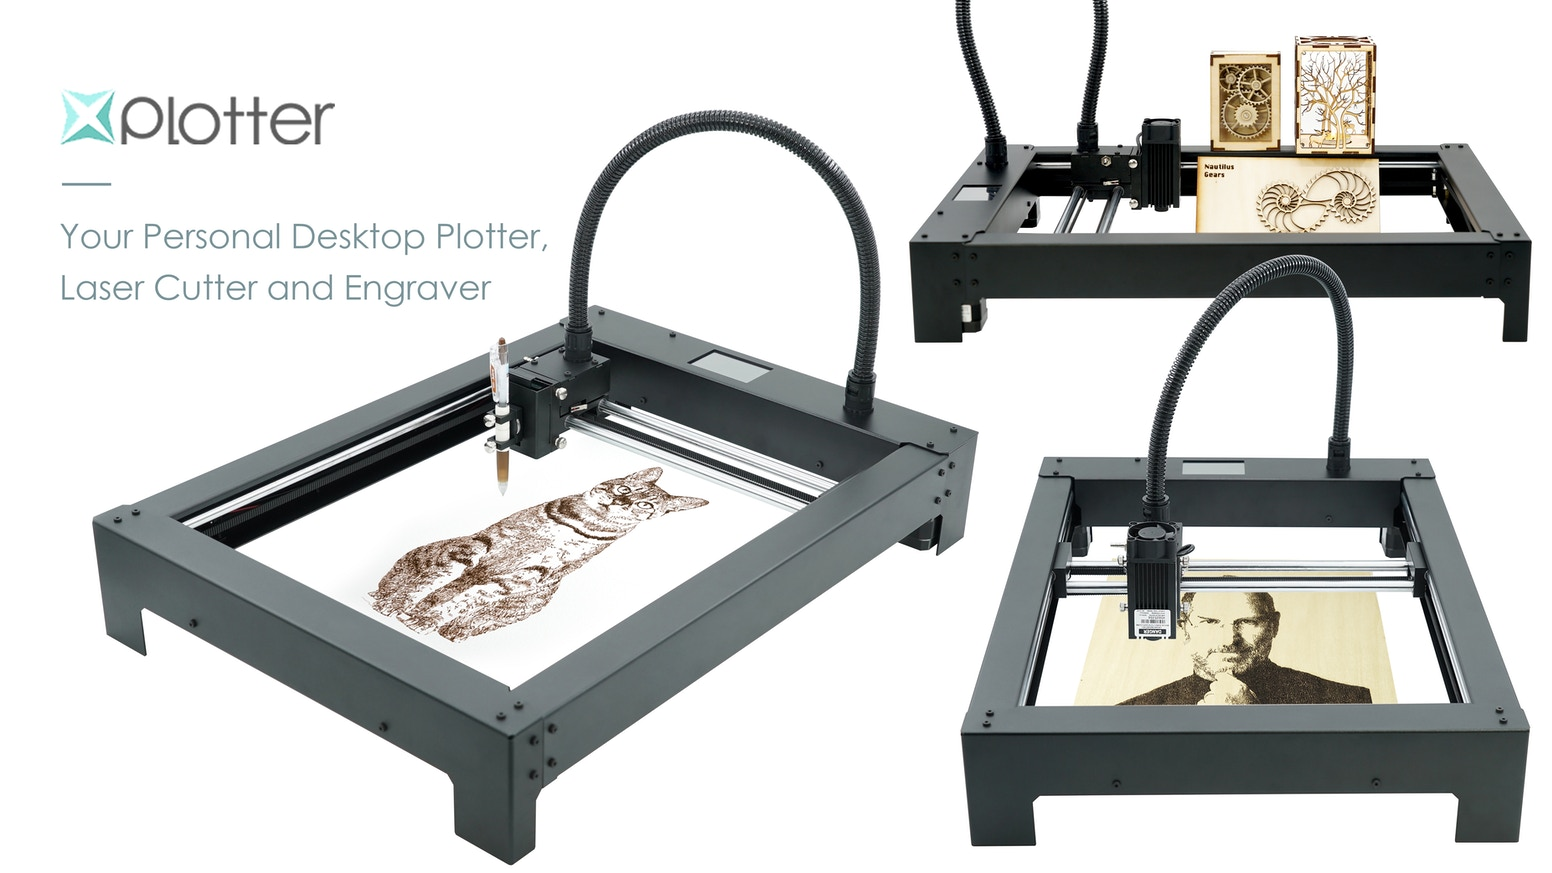 An affordable and easy to use desktop Plotter, Laser Cutter and Engraver.